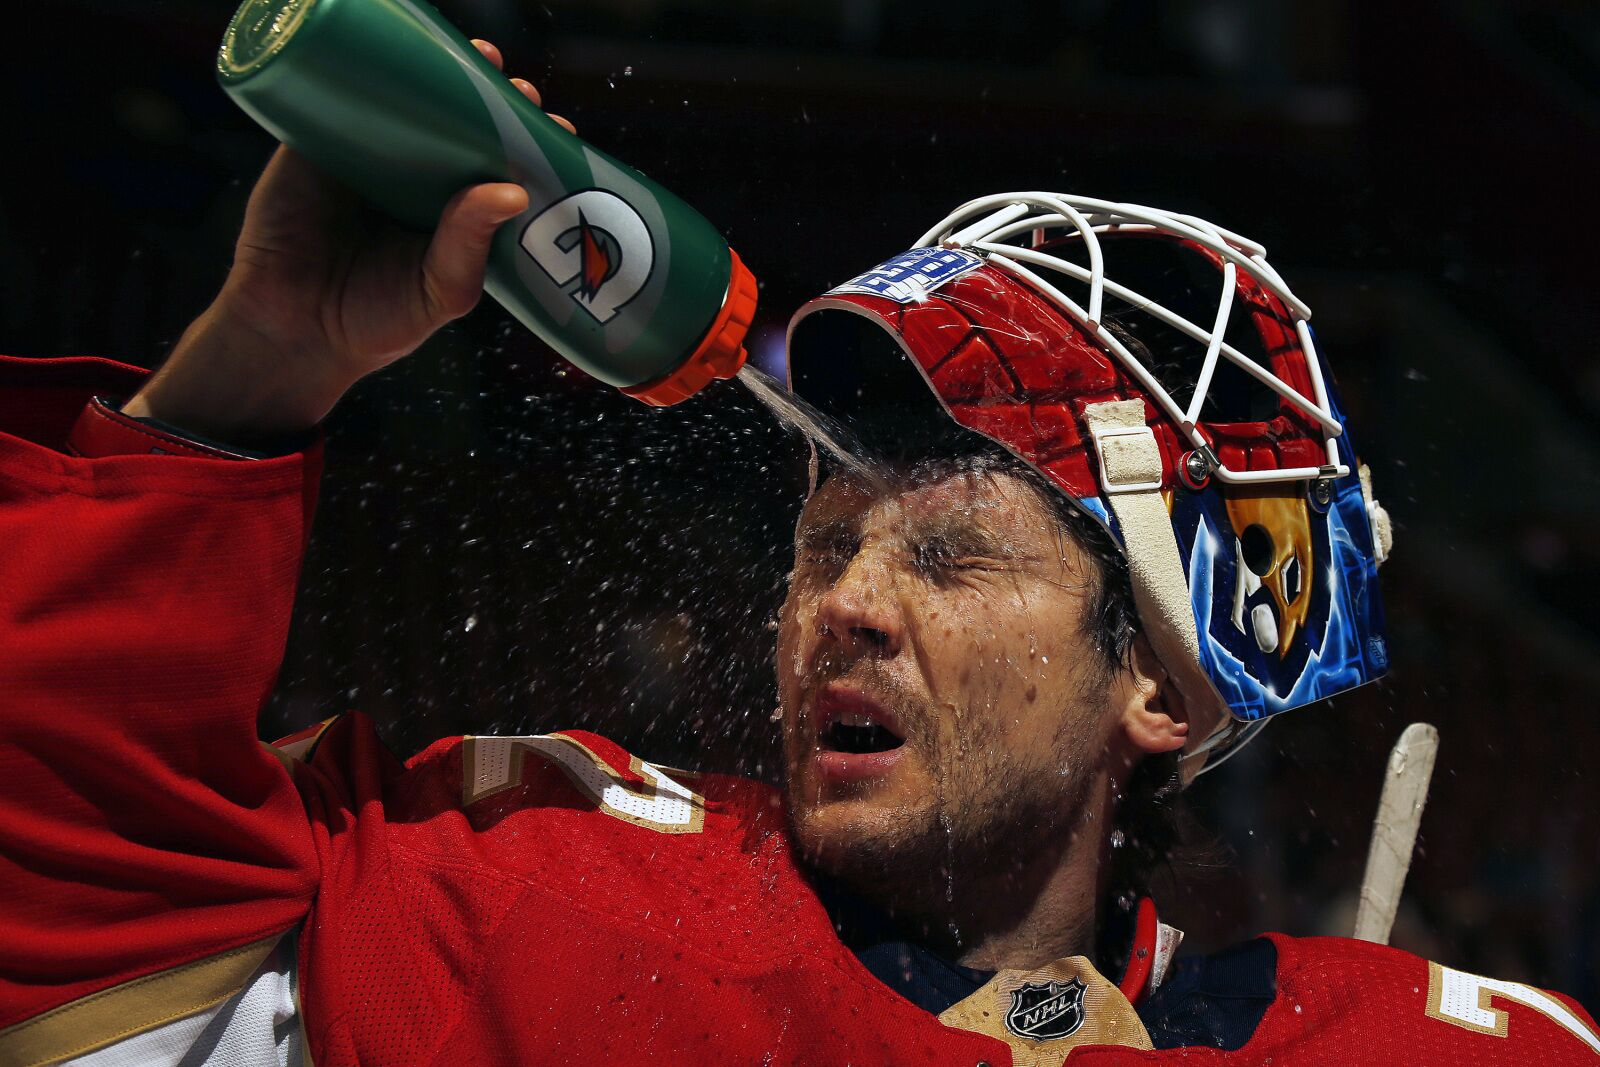 Florida Panthers win second straight game, beat Sharks 5-1